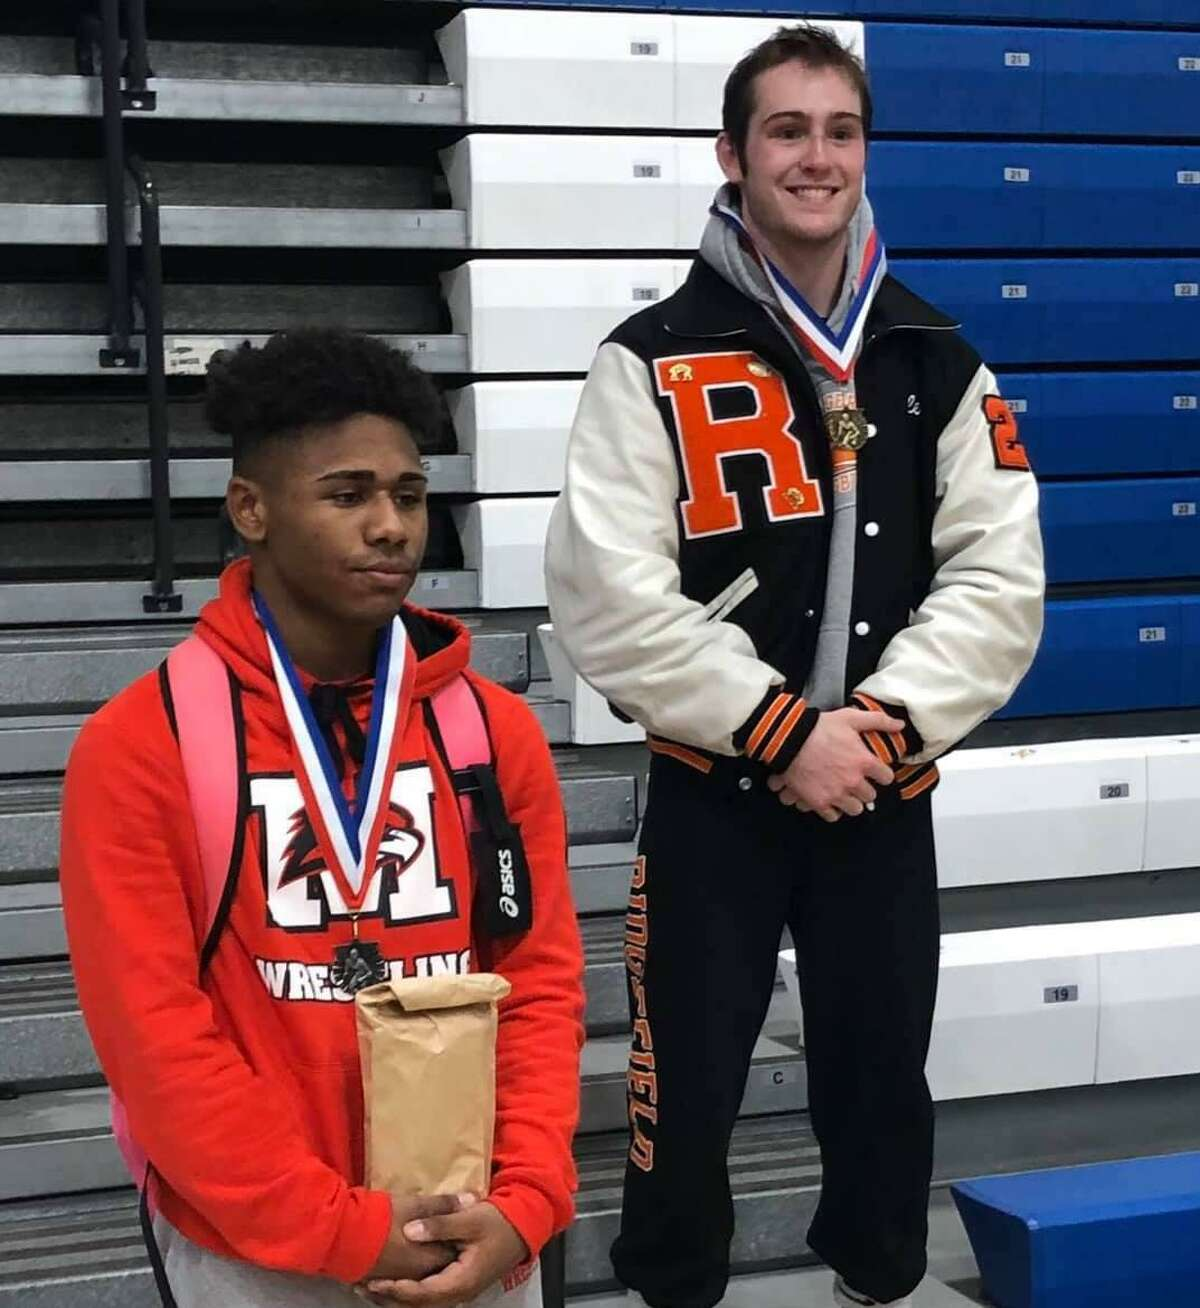 Ridgefield's Liam Keppler, right, won his weight class at the Greater Hartford Open wrestling tournament.